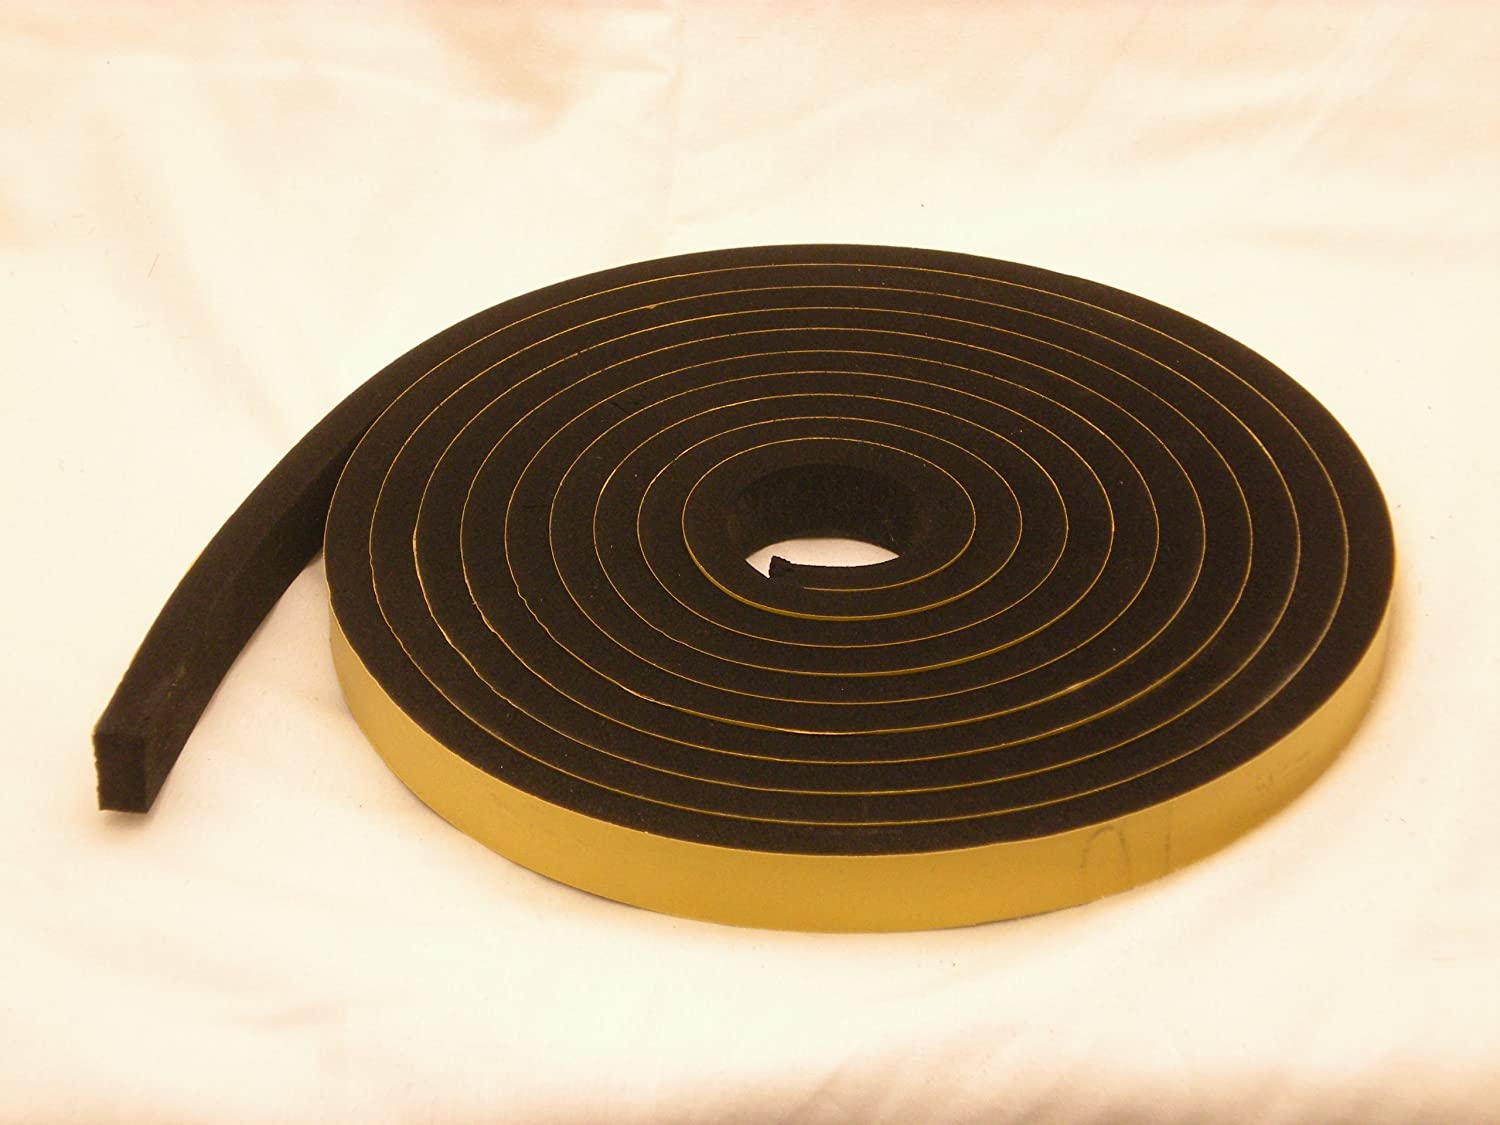 NEOPRENE RUBBER Self Adhesive Strip 3 4 wide x 1 2 thick x 16 feet long